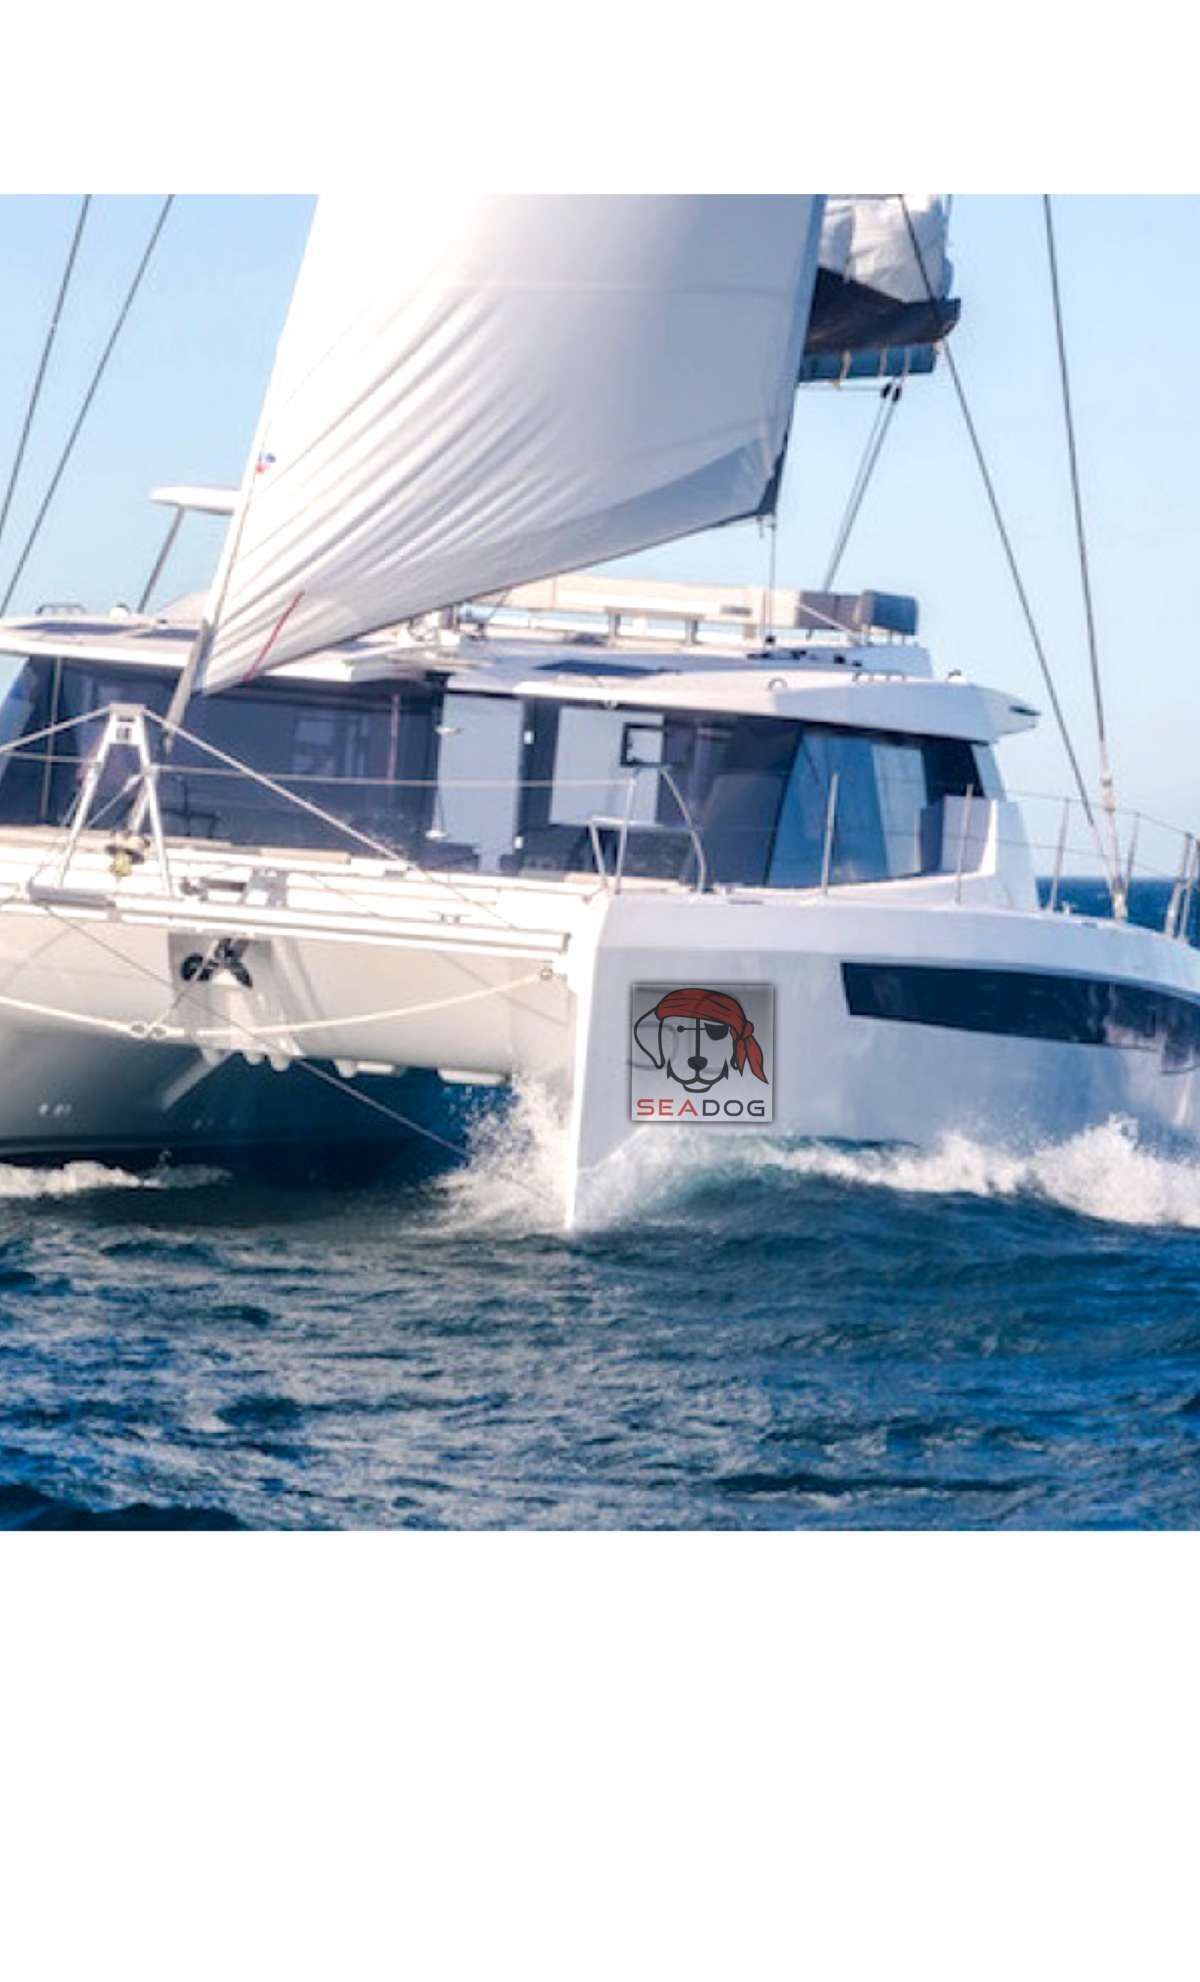 SEA DOG Yacht Charter - Ritzy Charters